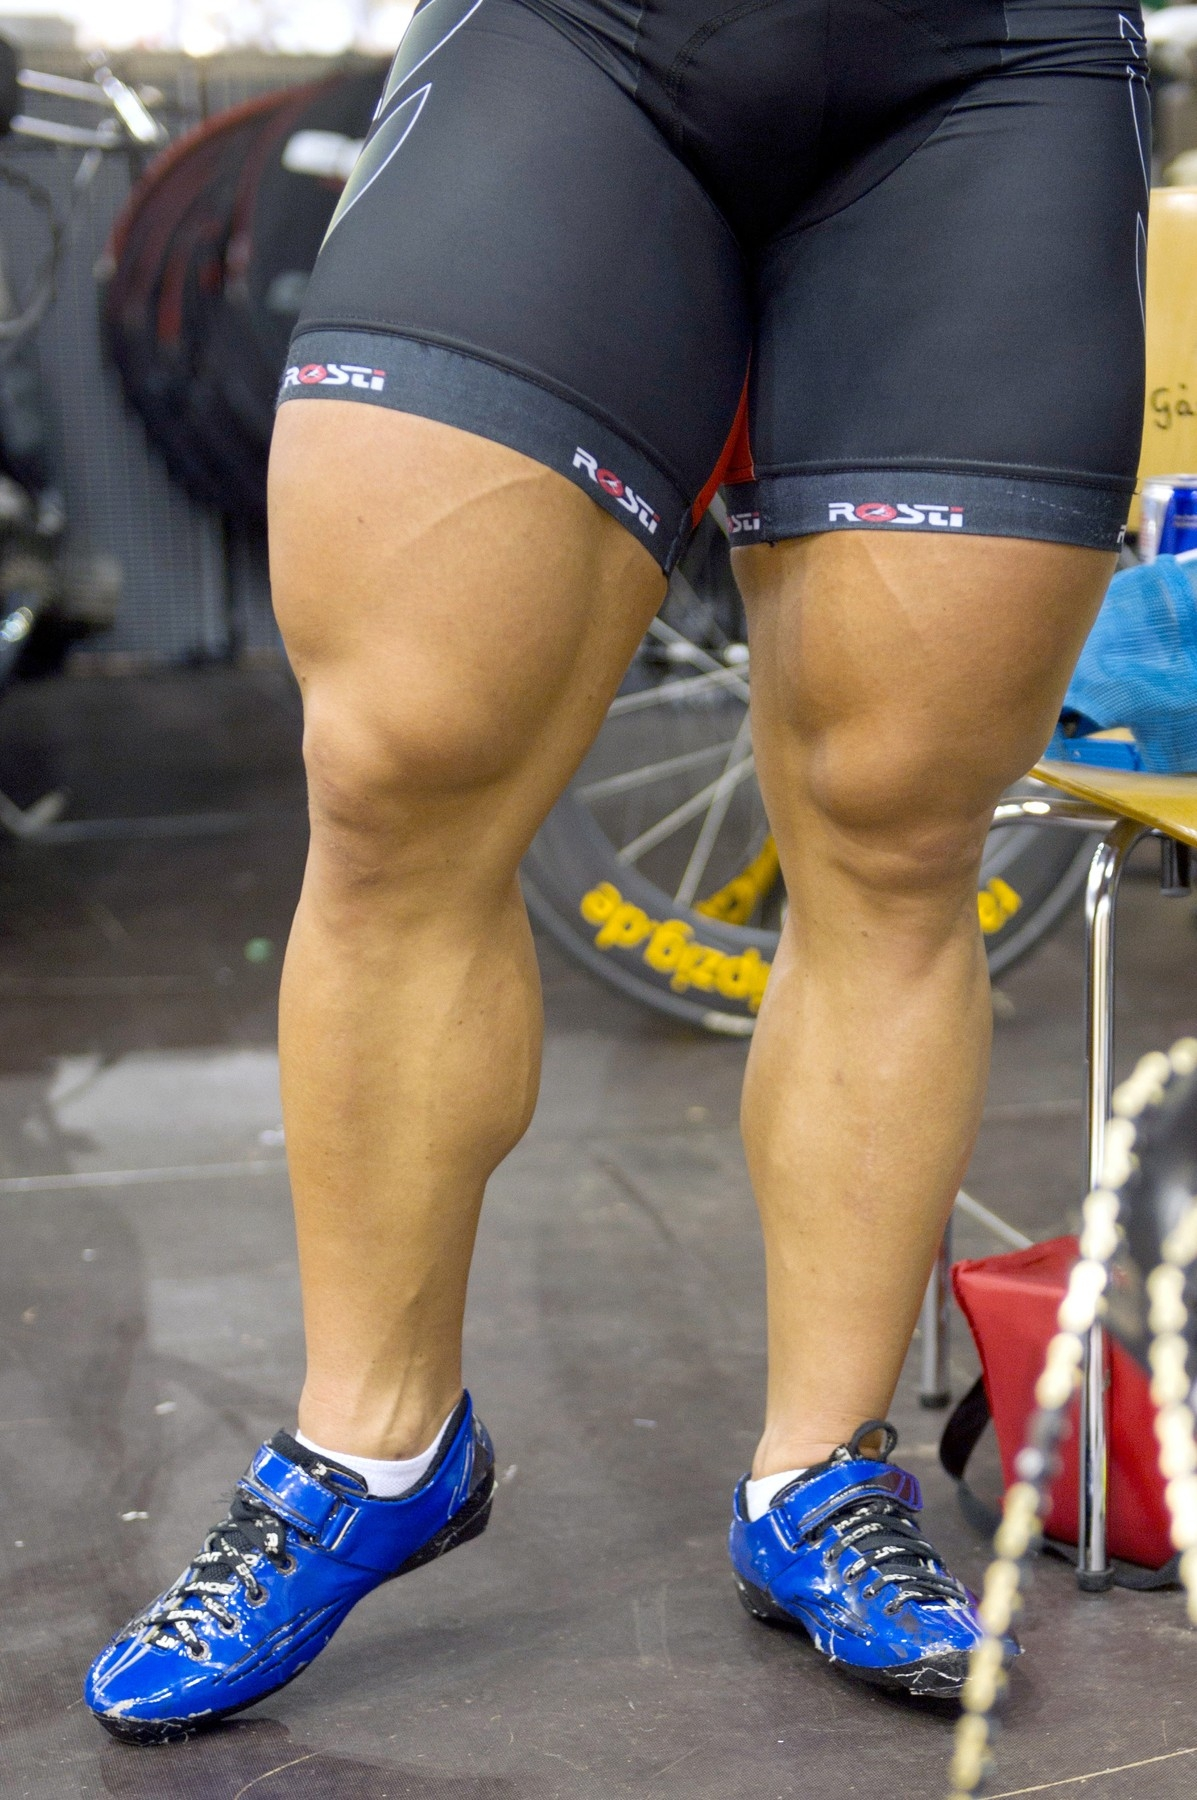 German cyclist Robert Foerstermann displays his muscle toned legs during the Sixday Cycling race at the Velodrom in Berlin, Germany on January